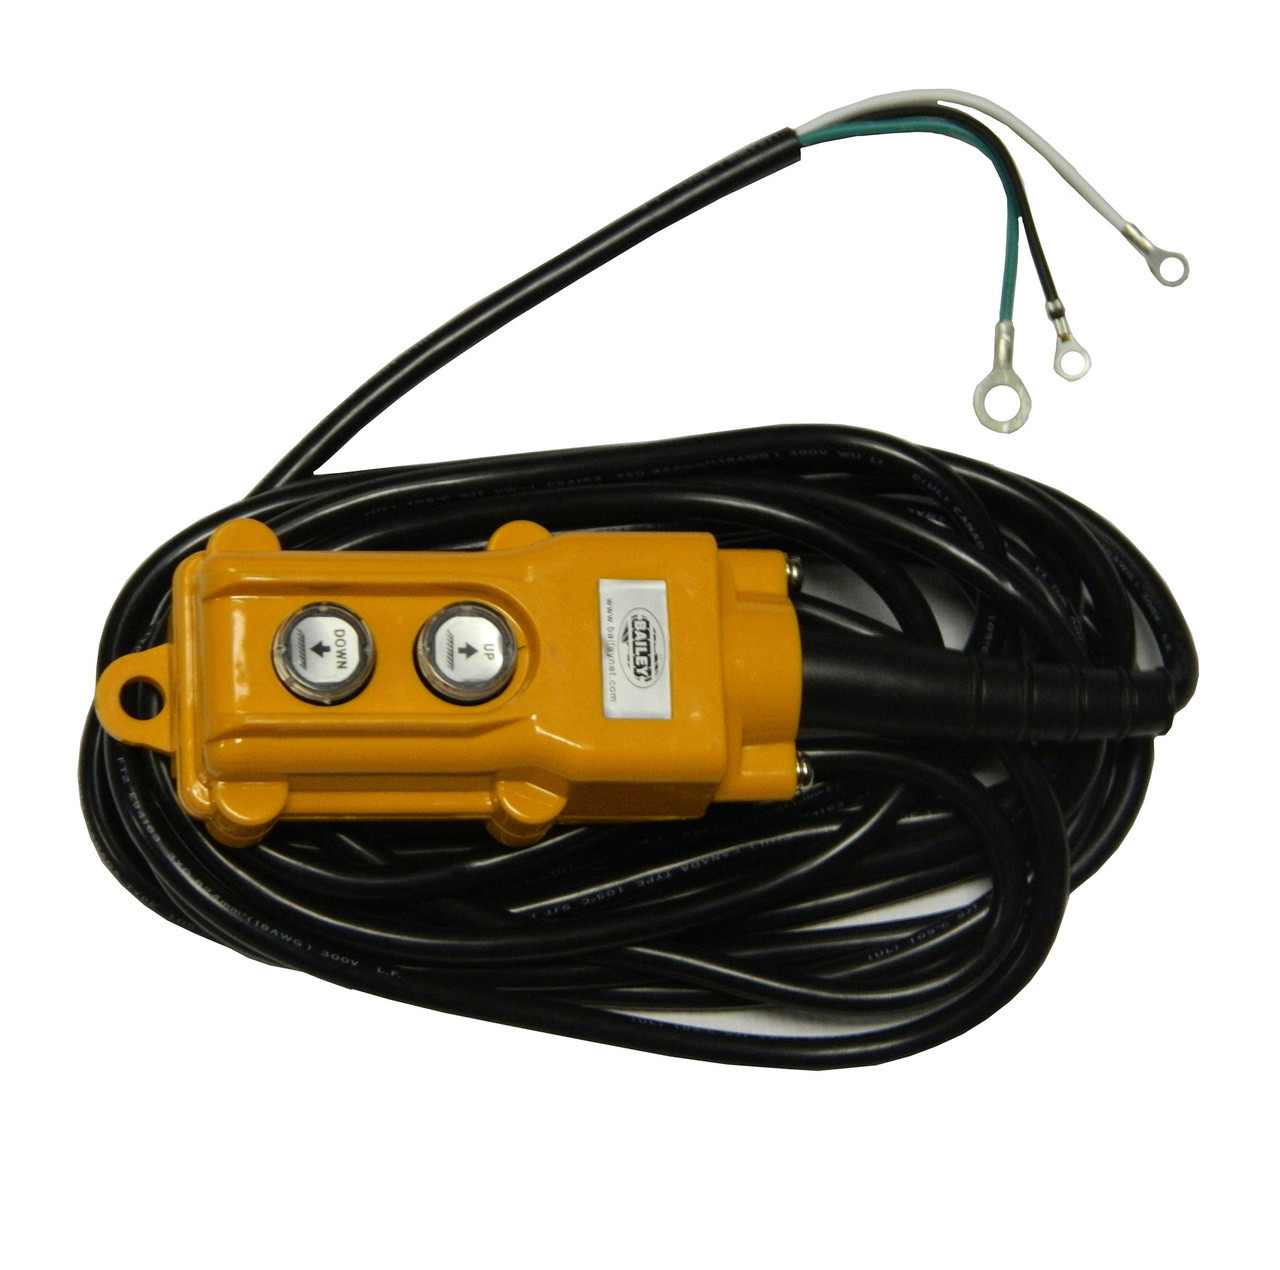 Dtrc Gd Replacement Remote Control For Dump Trailers 3 Wire Hang Wiring Harness Trailer